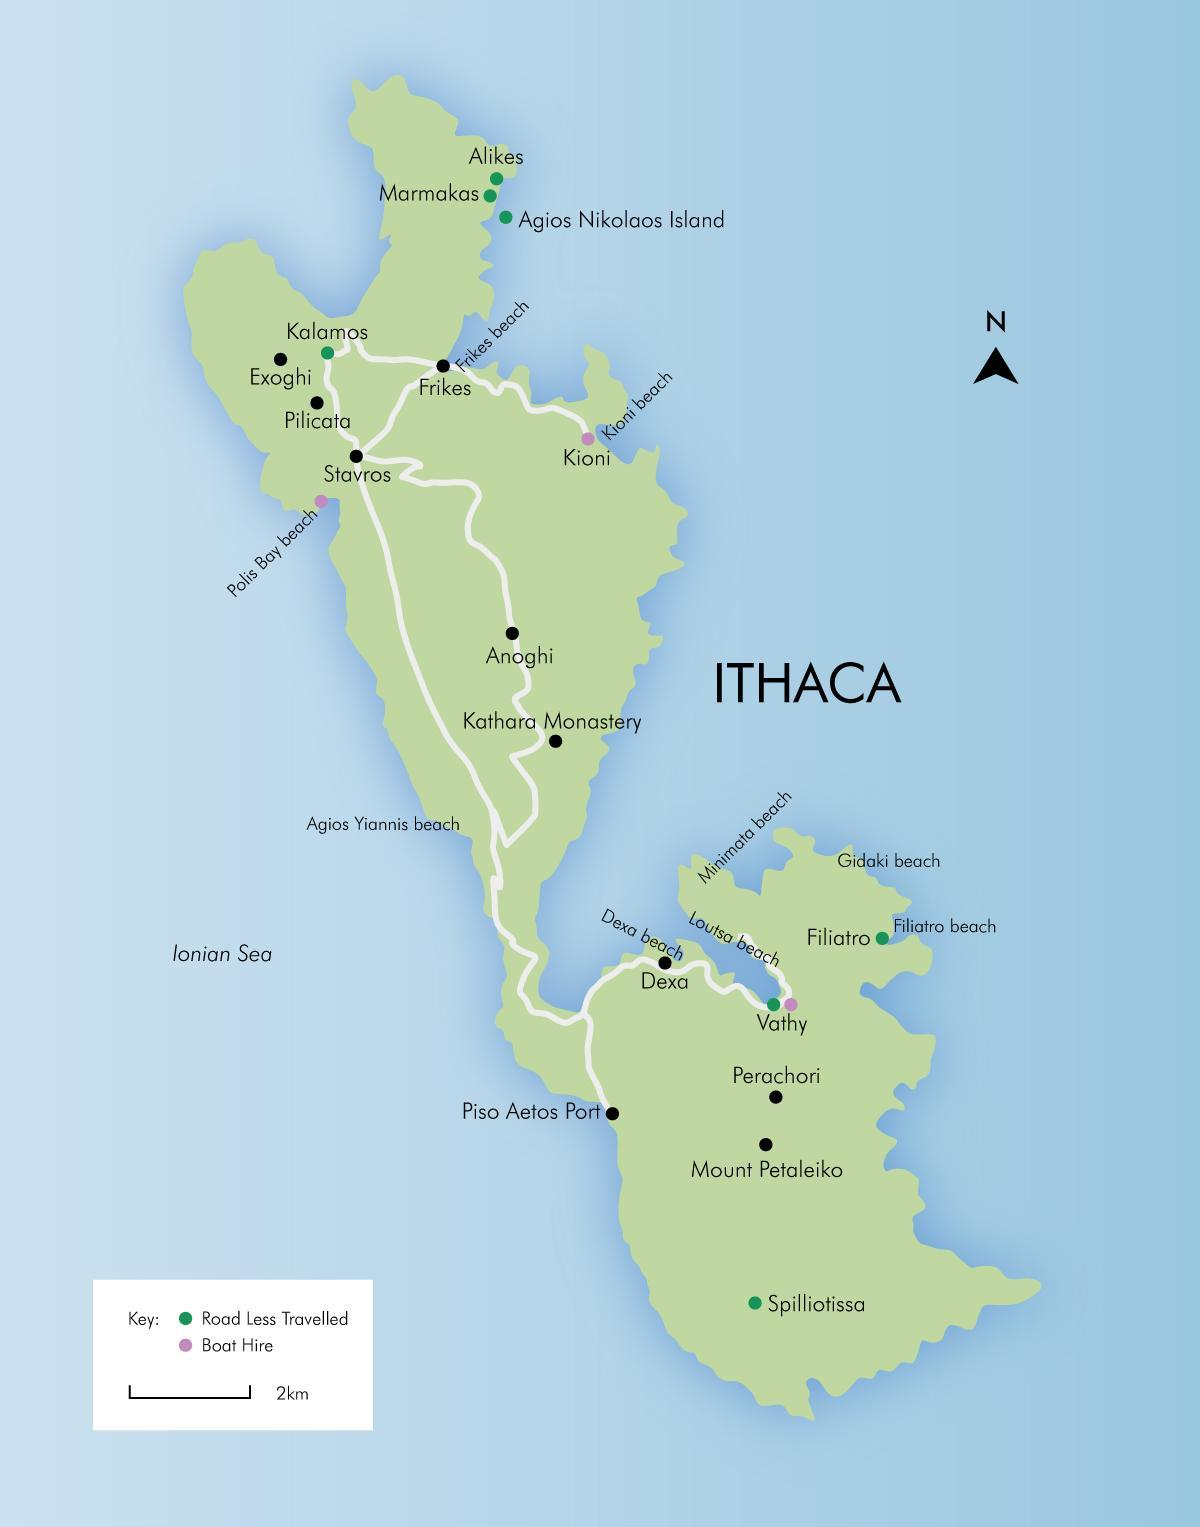 Ithaca Greece map Map of Ithaca Greece Southern Europe Europe